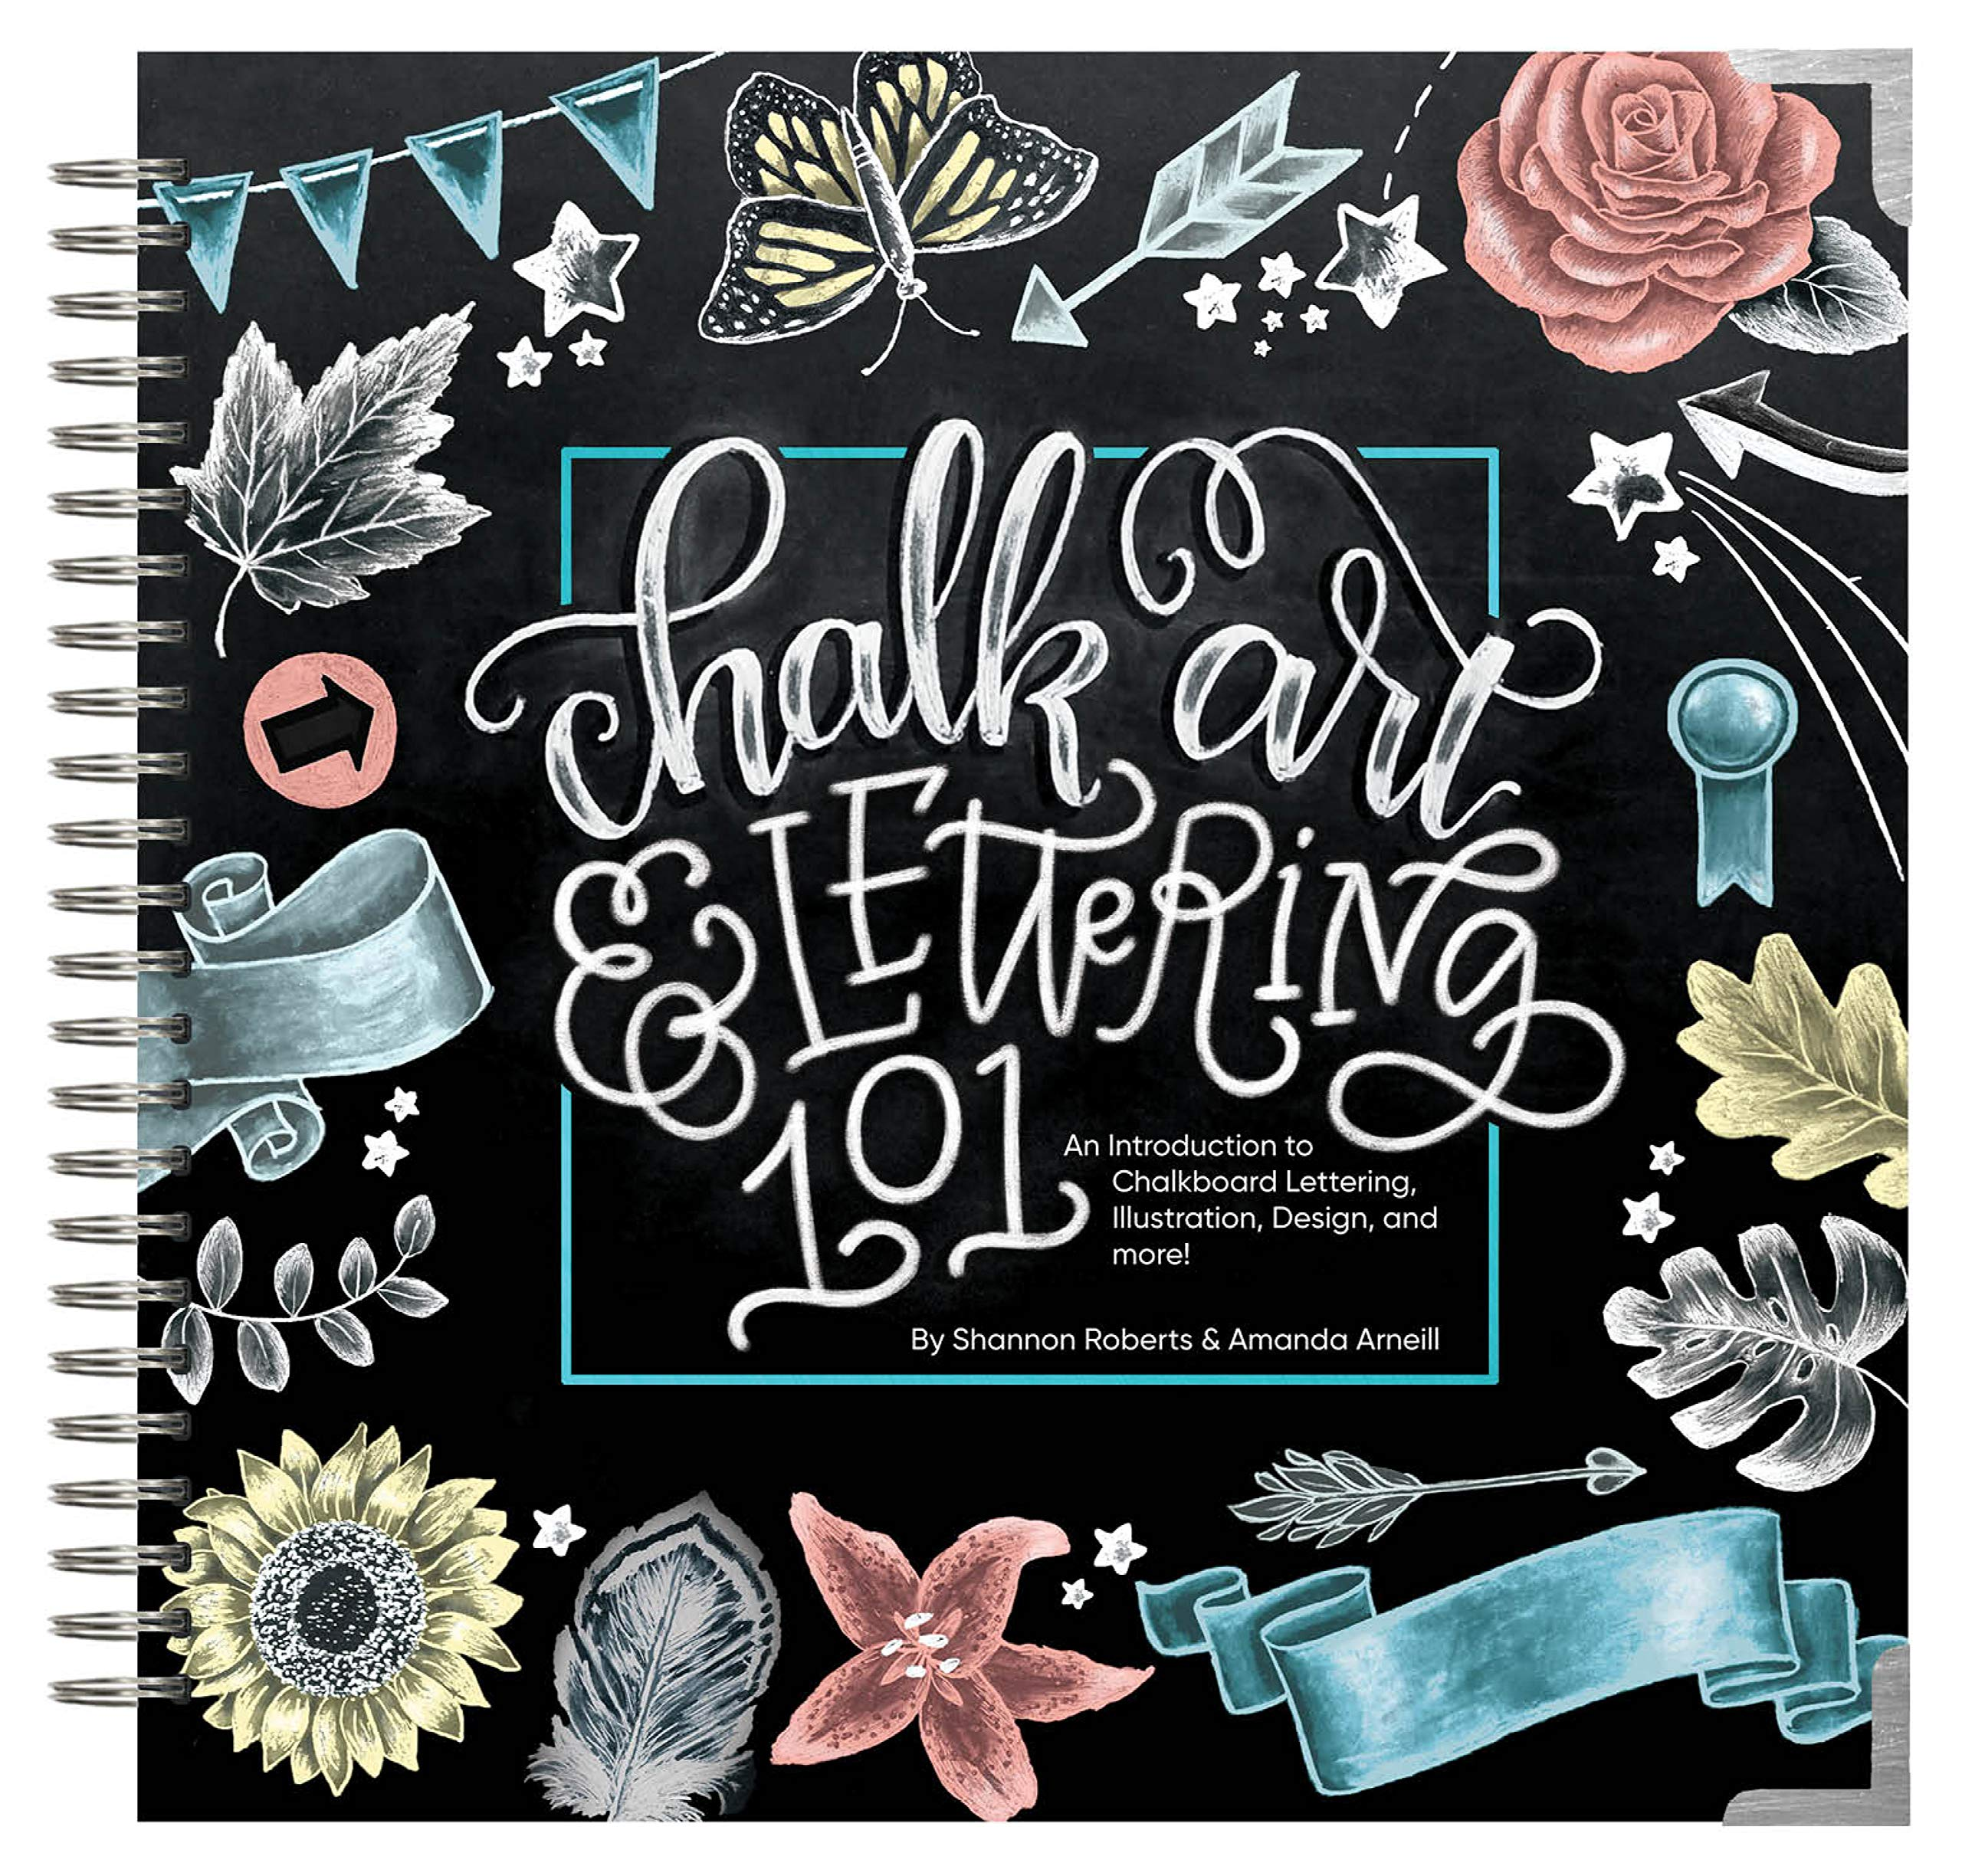 Chalk Art Lettering 101 Introduction product image